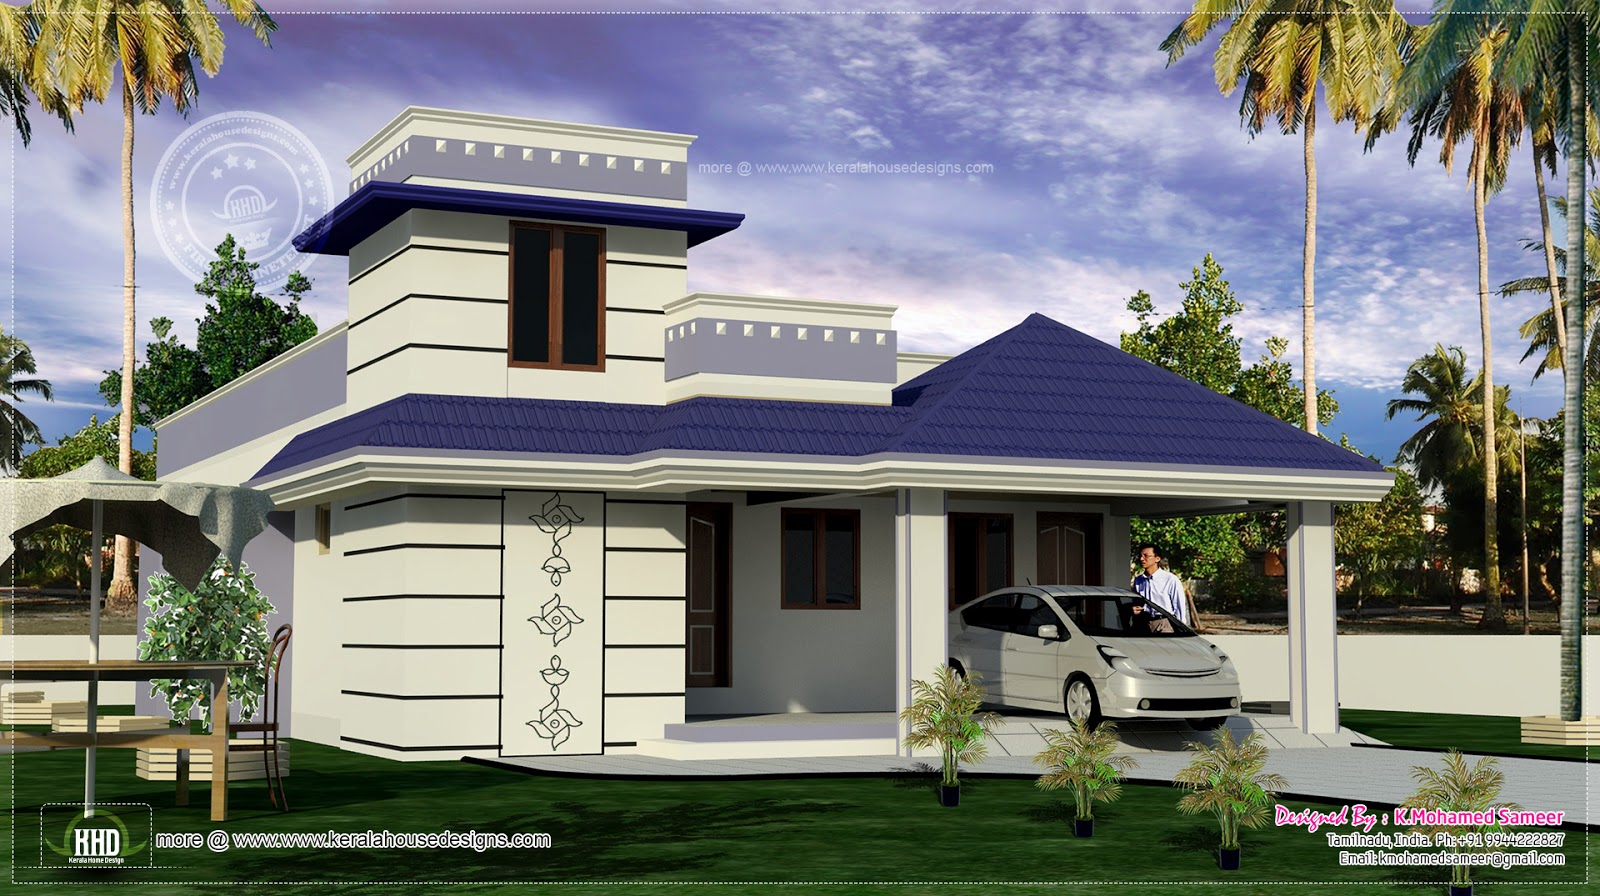 1700 one floor for south indian home kerala home for Model house photos in indian